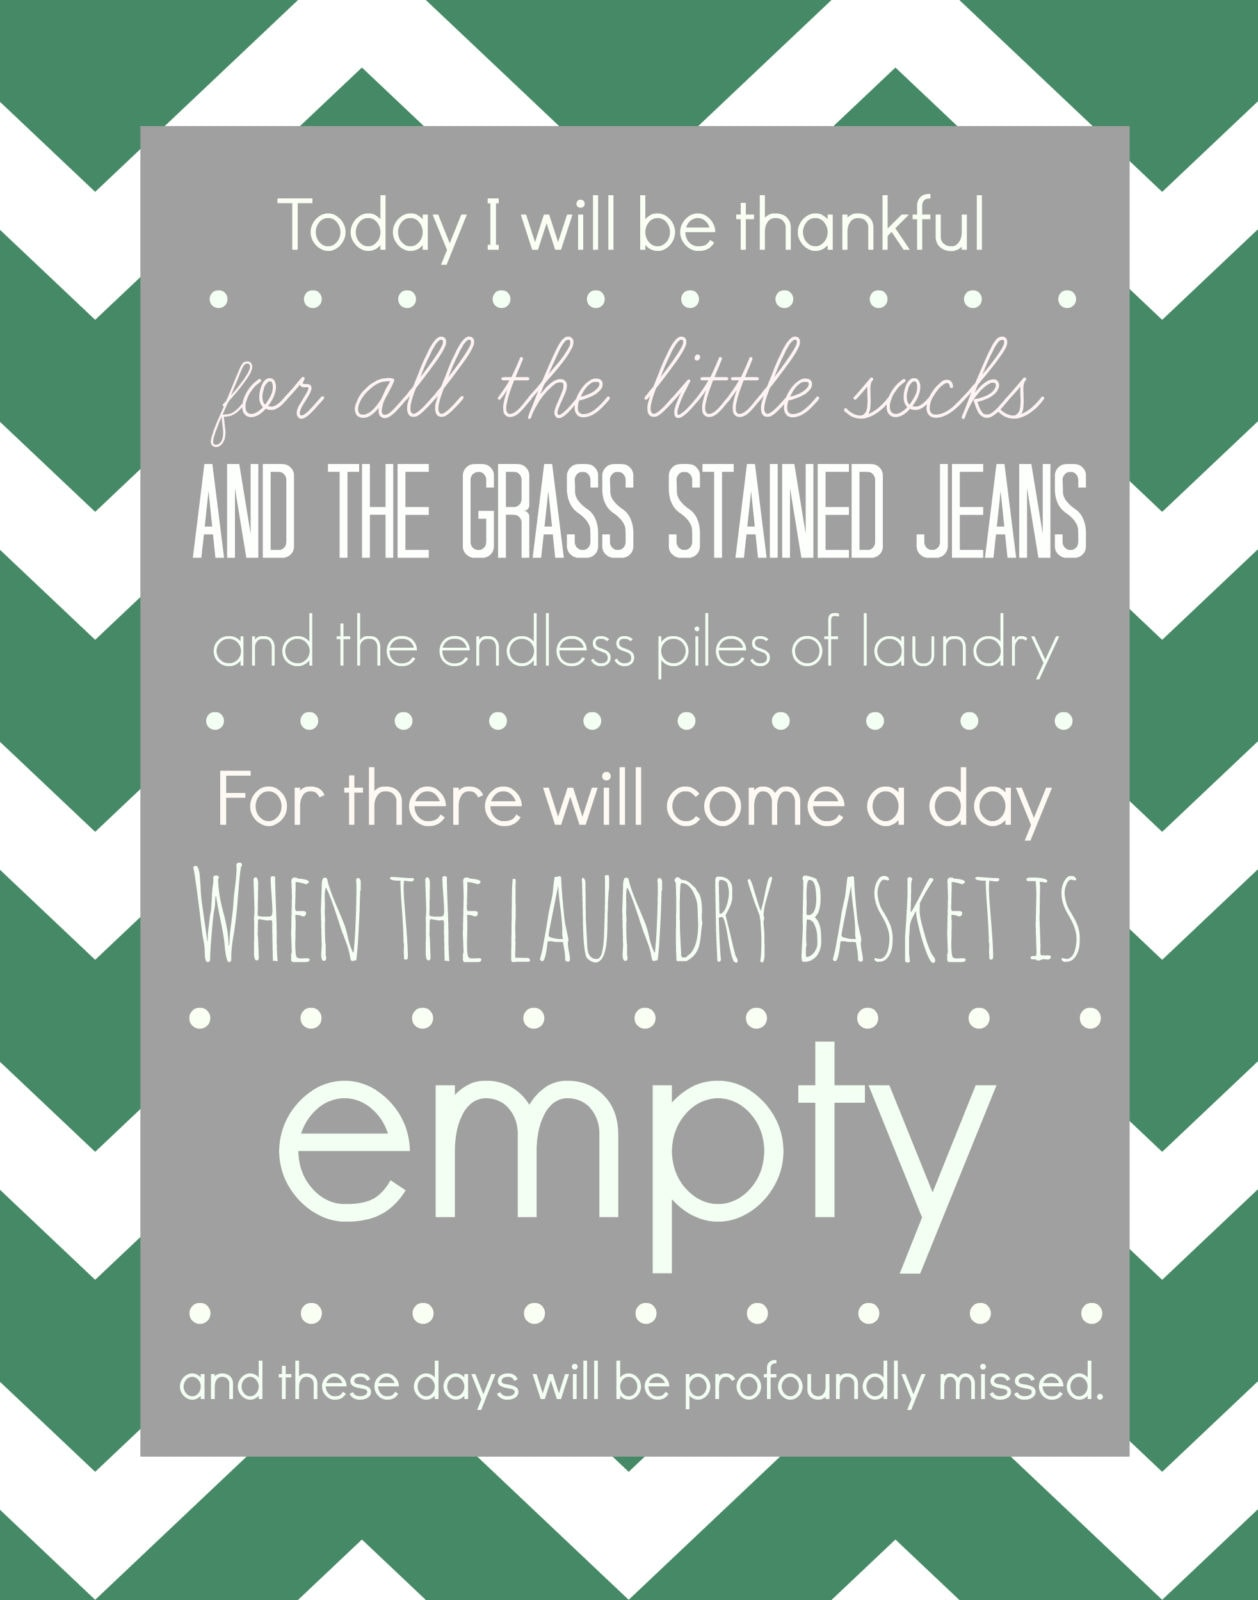 Free Laundry Room Printable by Designer Trapped in a Lawyer's Body {designertrapped.com}